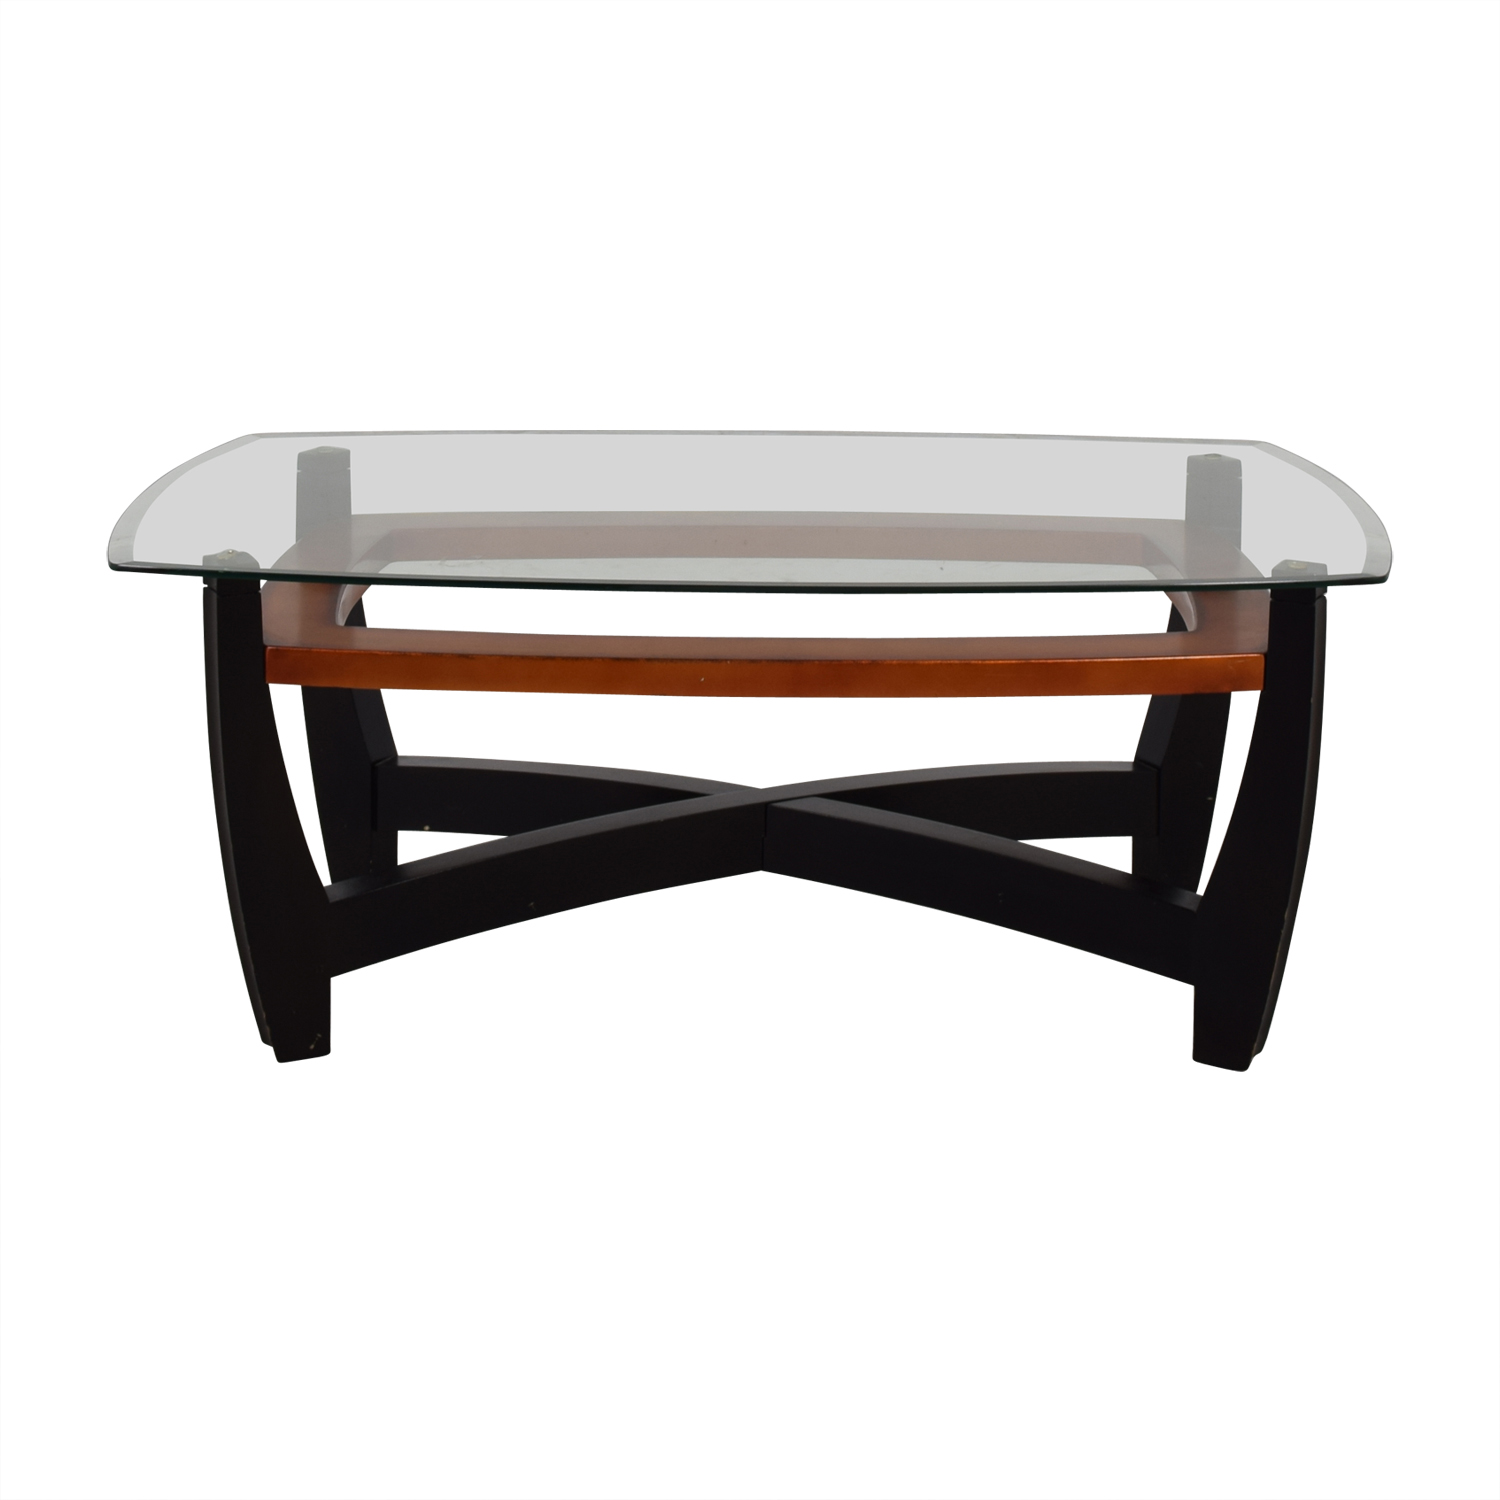 Raymour & Flanigan Raymour & Flanigan Black and Brown Glass Top Coffee Table Coffee Tables